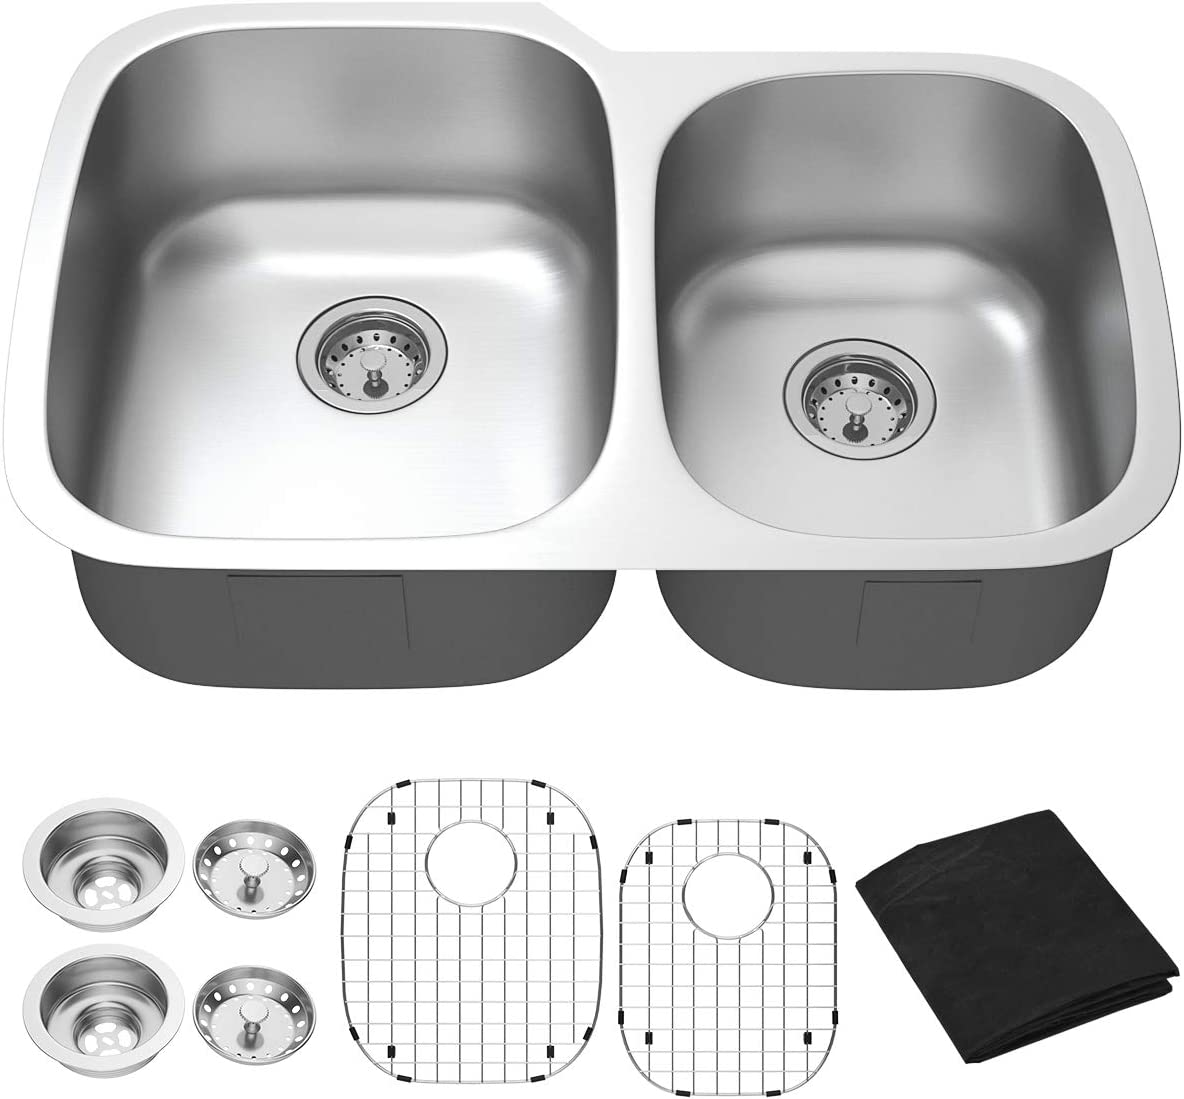 Giantex Undermount Double Bowl Kitchen Sink 60 40 Wash Sink 16 Gauge Stainless Steel Dual Sinks with Accessories 9 Deep 32 Lx21 Wx9 H